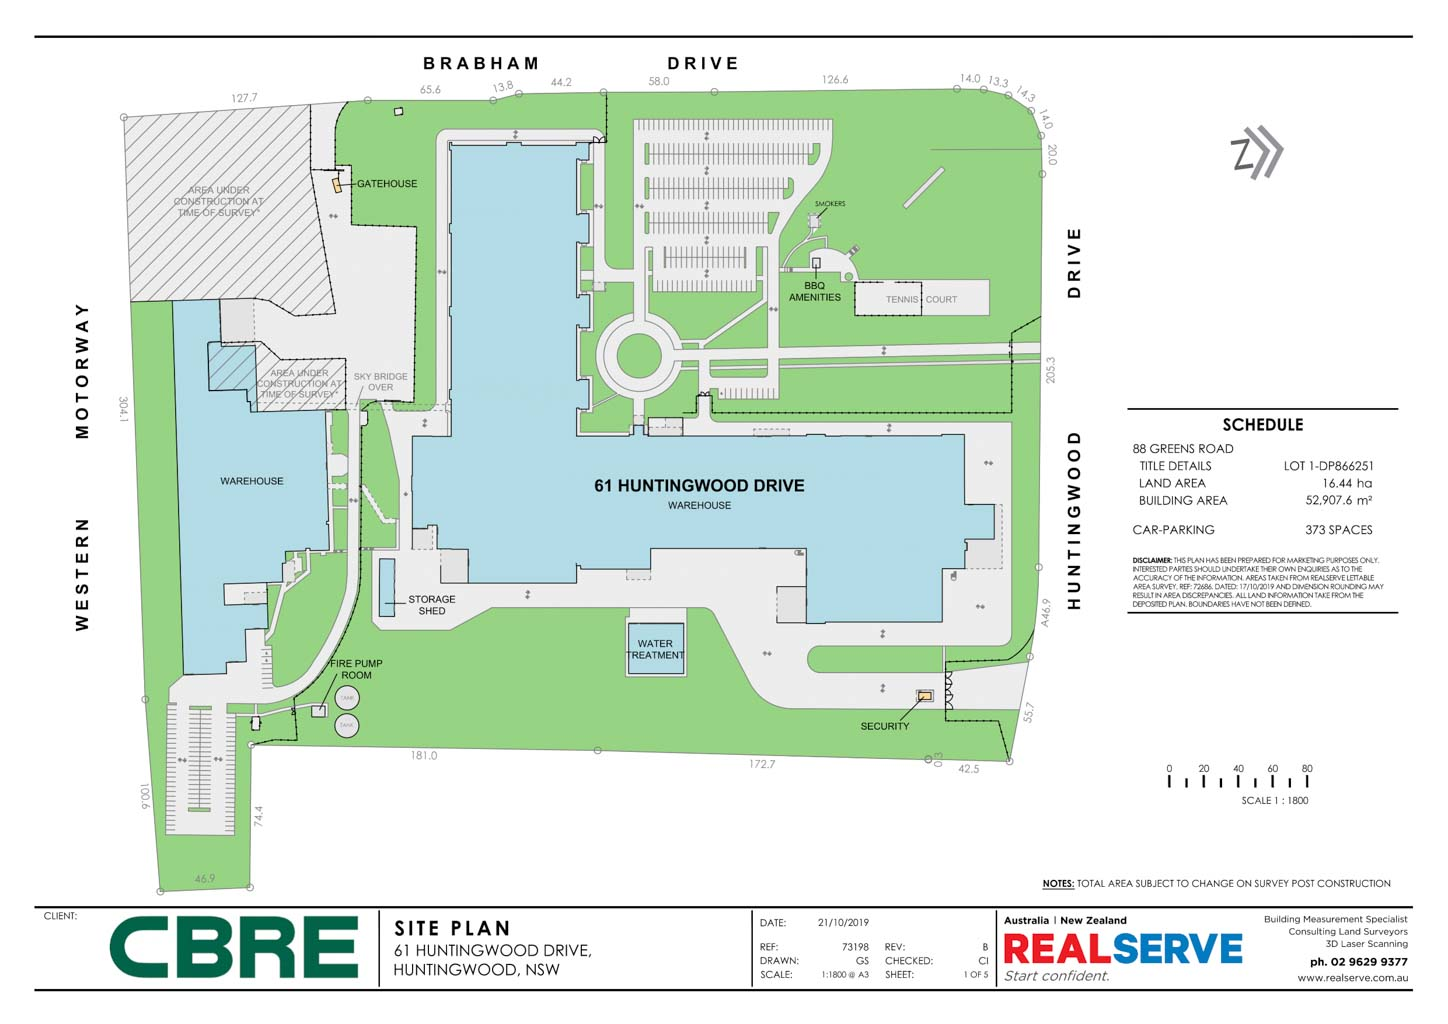 SITE PLAN SAMPLE FROM REALSERVE FOR A COMMERCIAL PROPERTY